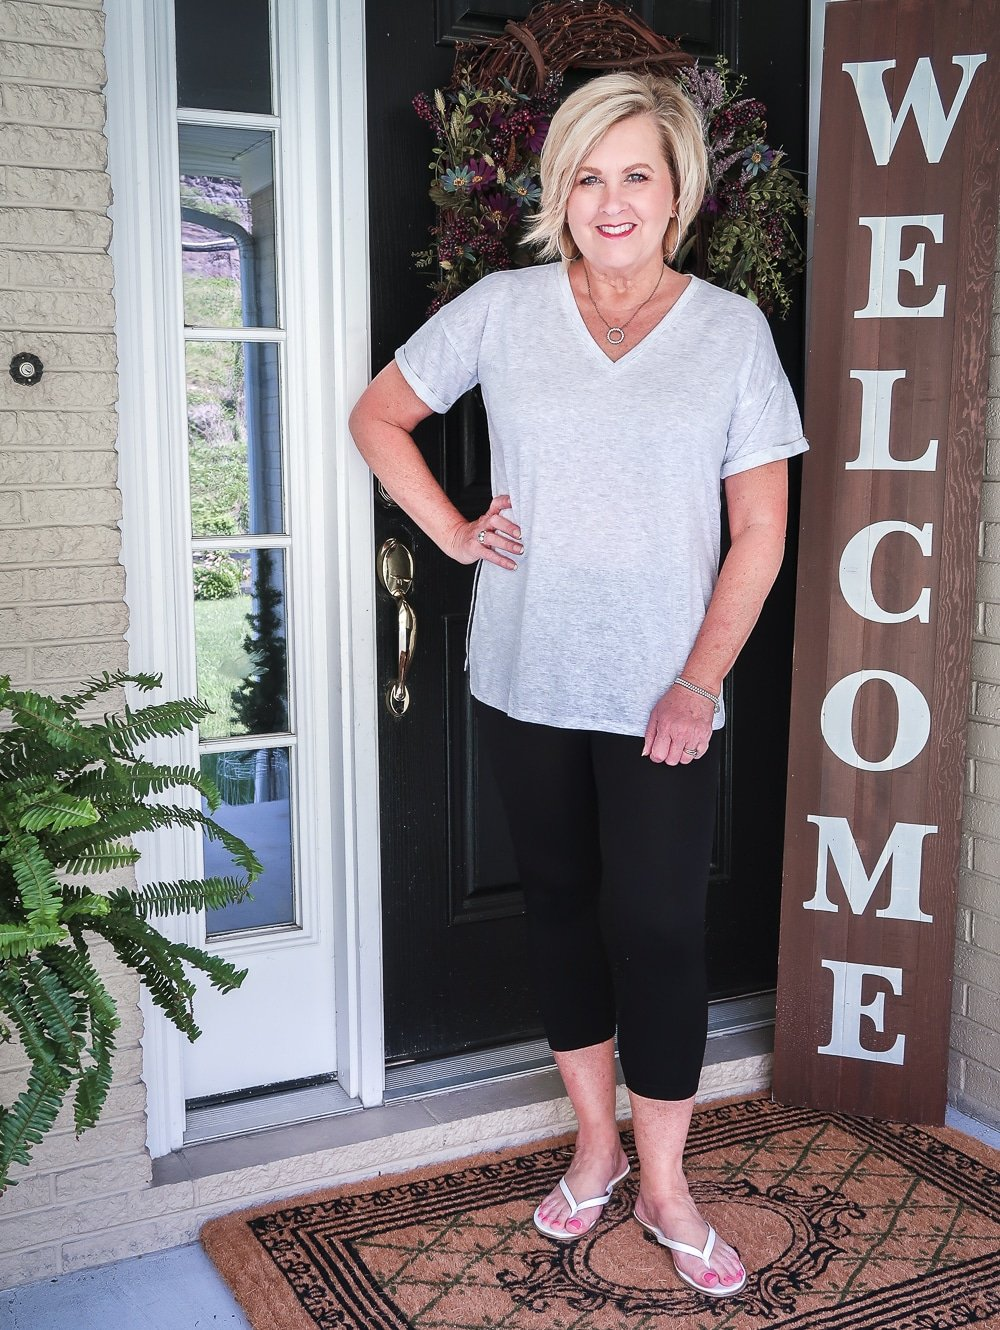 FASHION BLOGGER 50 IS NOT OLD IS WEARING A LIGHT GRAY TUNIC TOP AND BLACK LEGGINGS WITH A PAIR OF WHITE FLIP FLOPS